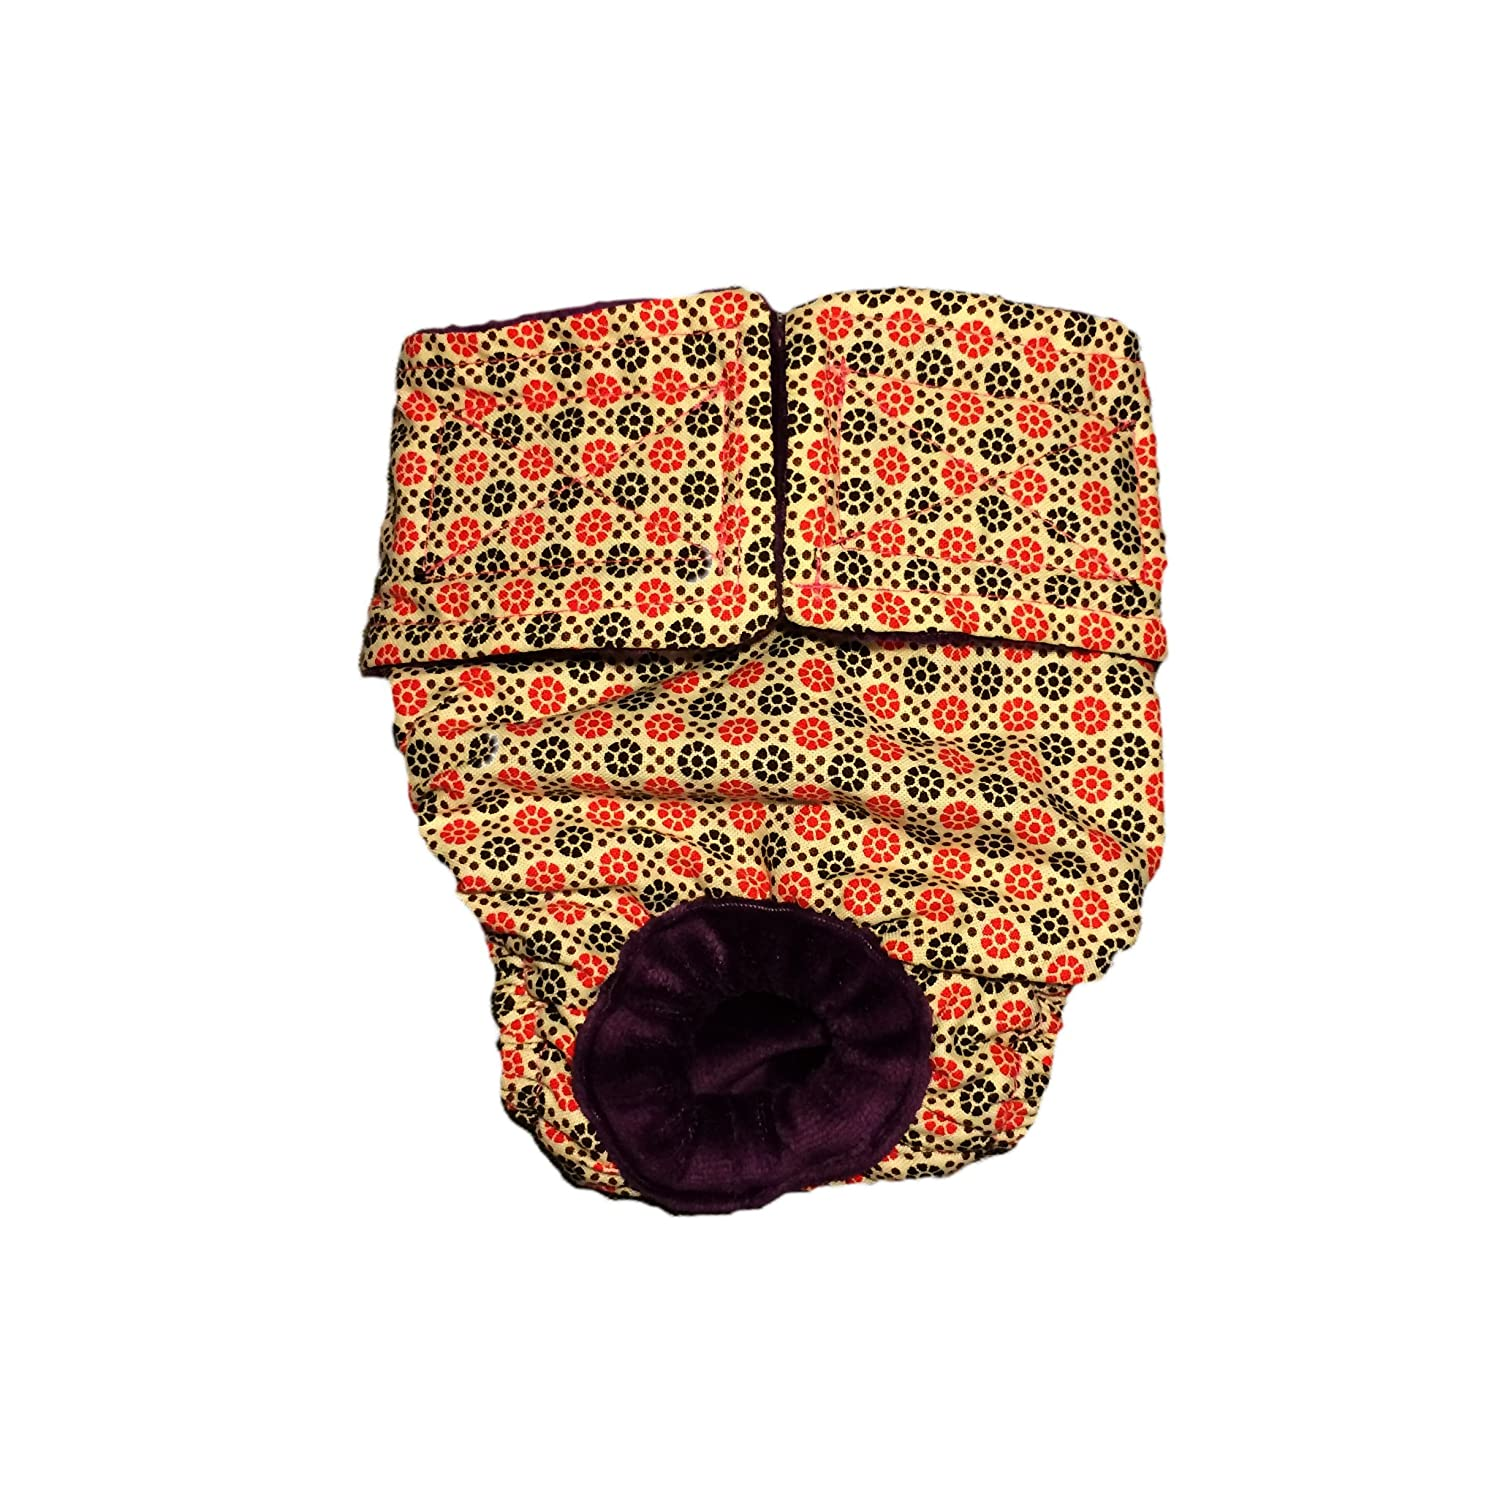 free shipping Cat Diapers - Made in USA - Red and Brown Flower Washable Cat Diaper for Piddling, Spraying or Incontinent Cats